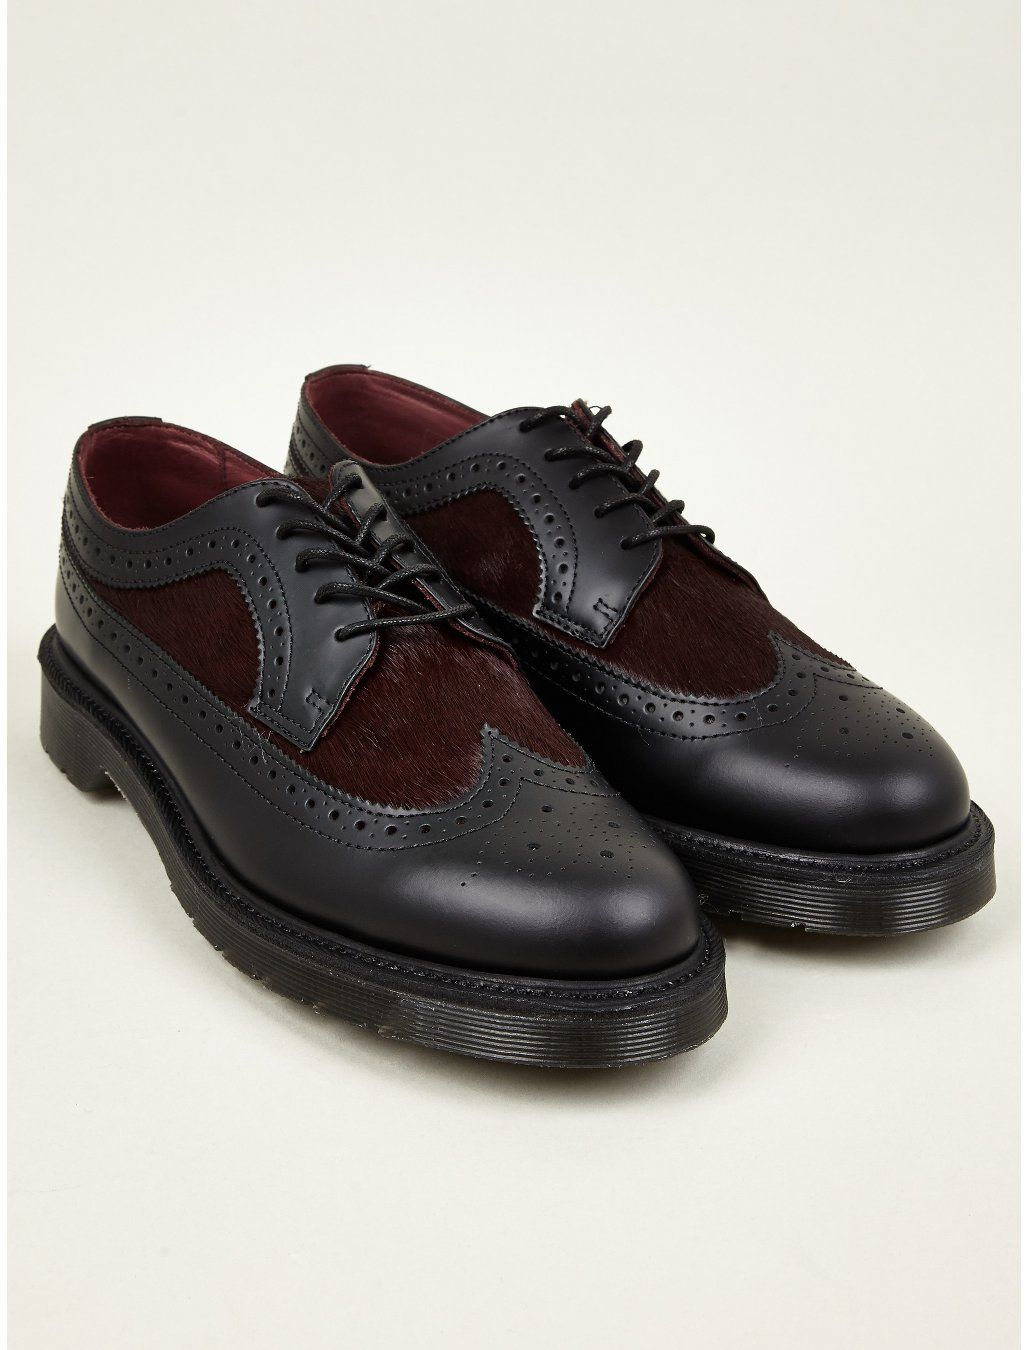 Dr Martens Men's Oxblood Nash Brogue Shoes | oki-ni